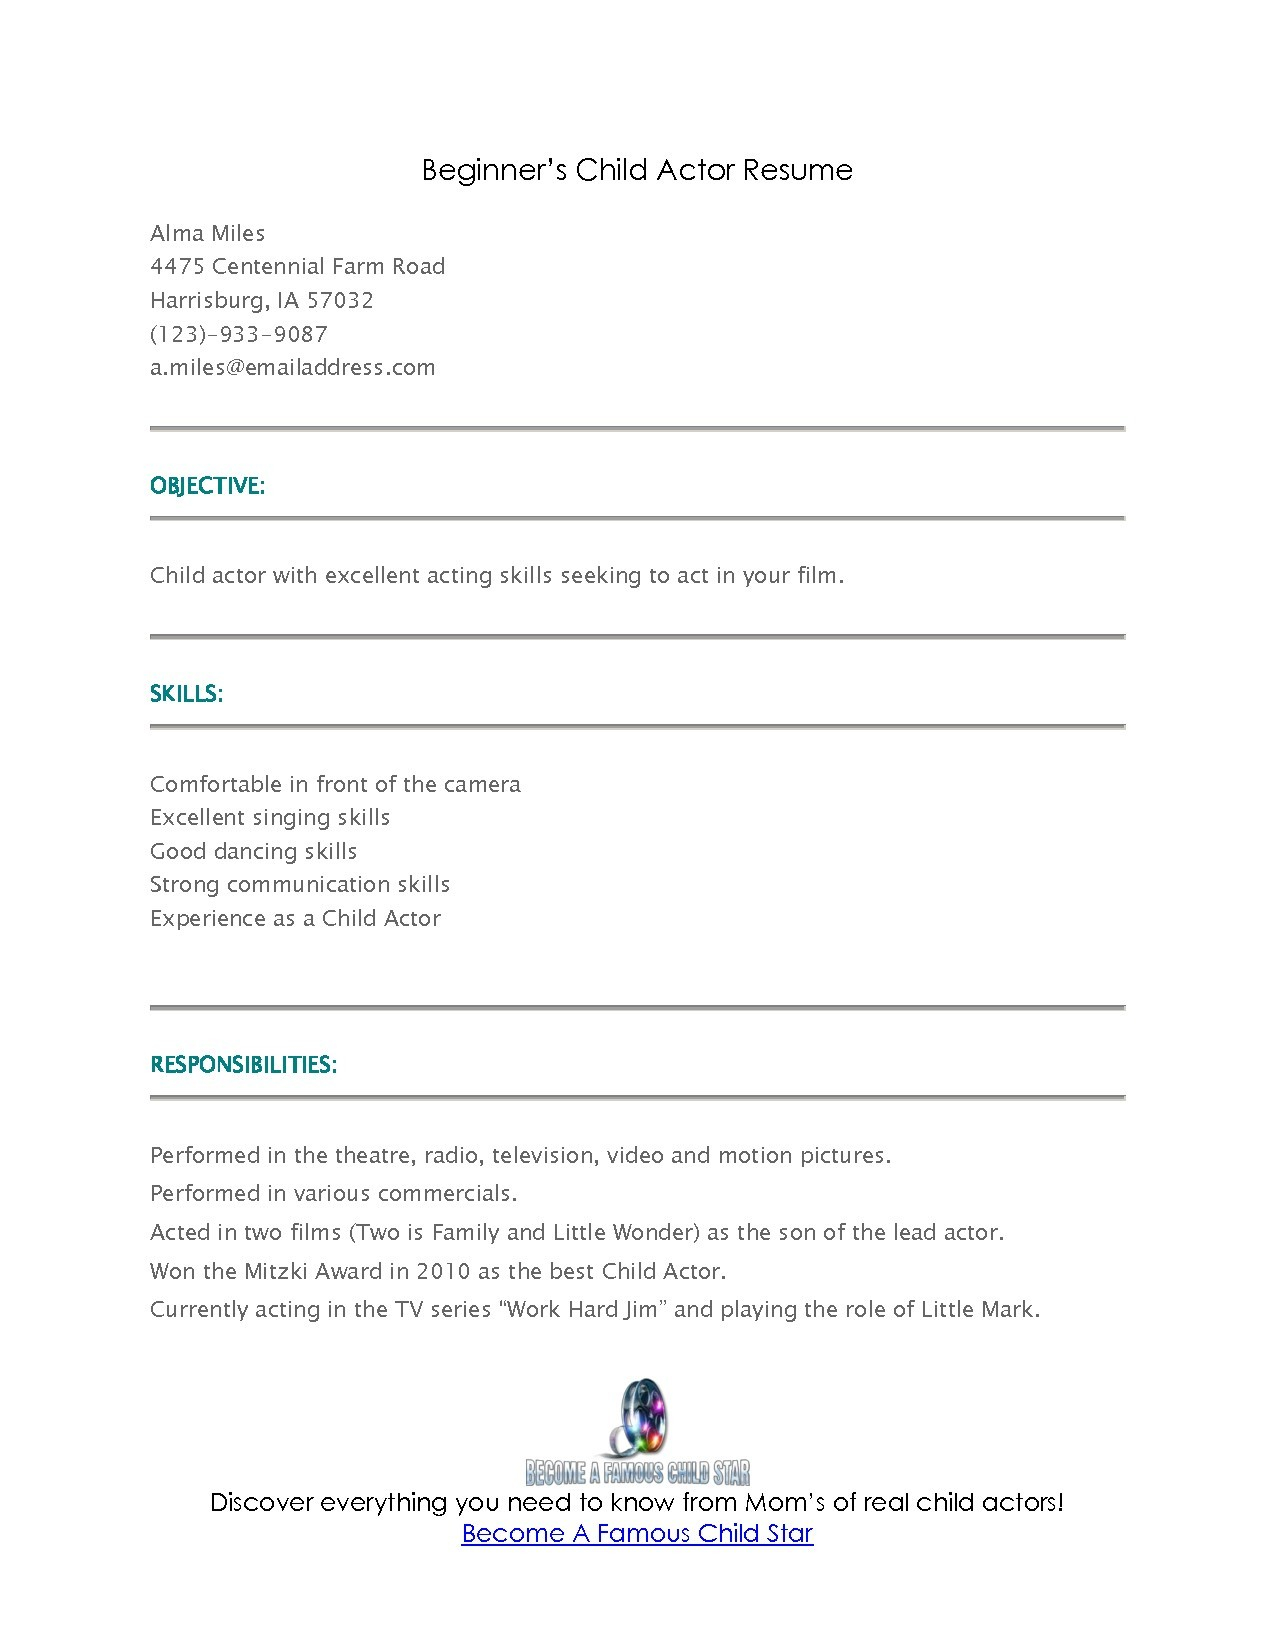 Child Acting Resume Template No Experience - 23 Beginners Resume Template